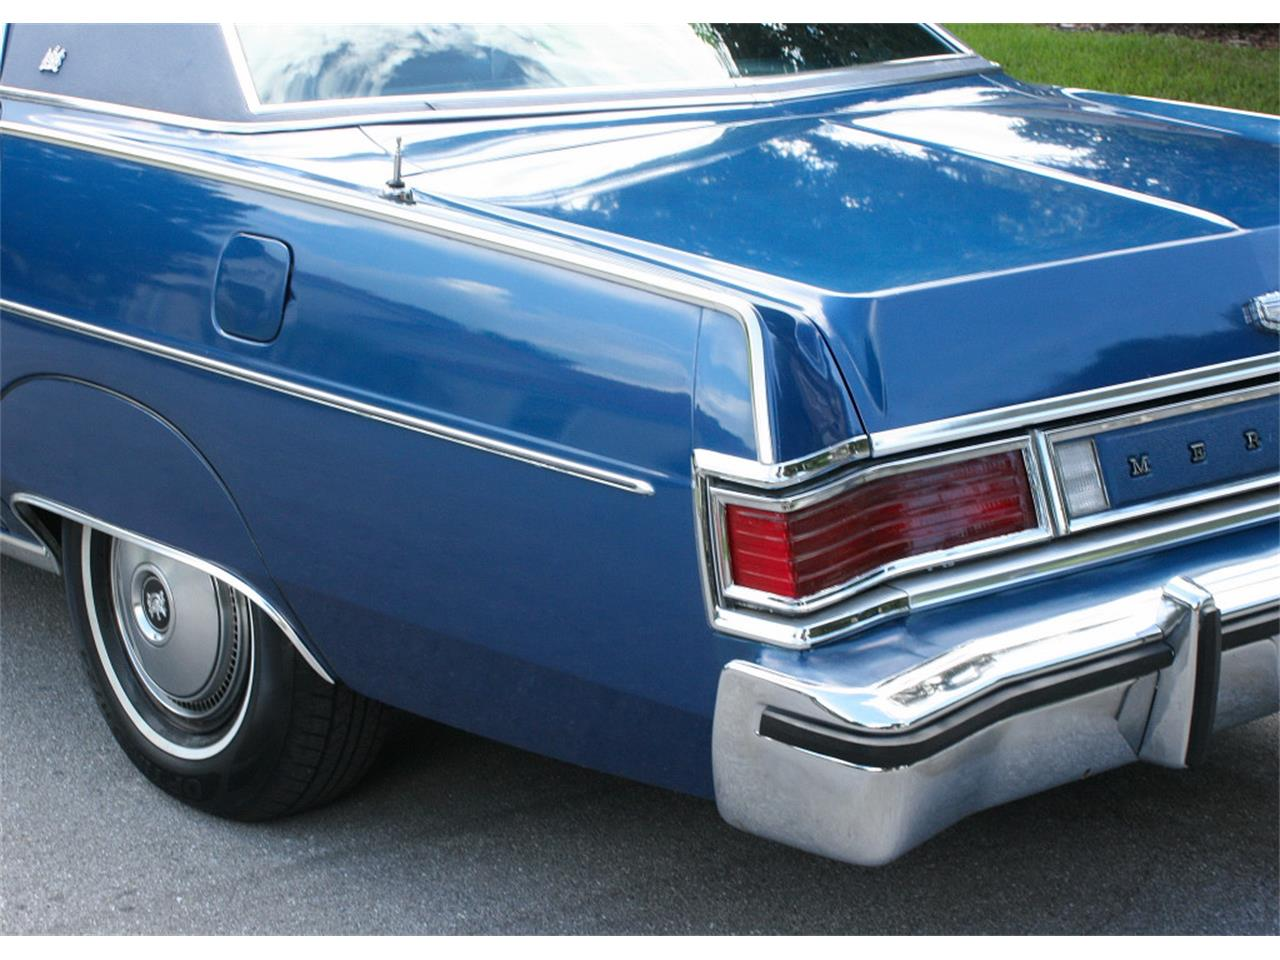 Large Picture of '77 Mercury Marquis - $16,500.00 Offered by MJC Classic Cars - JAVE